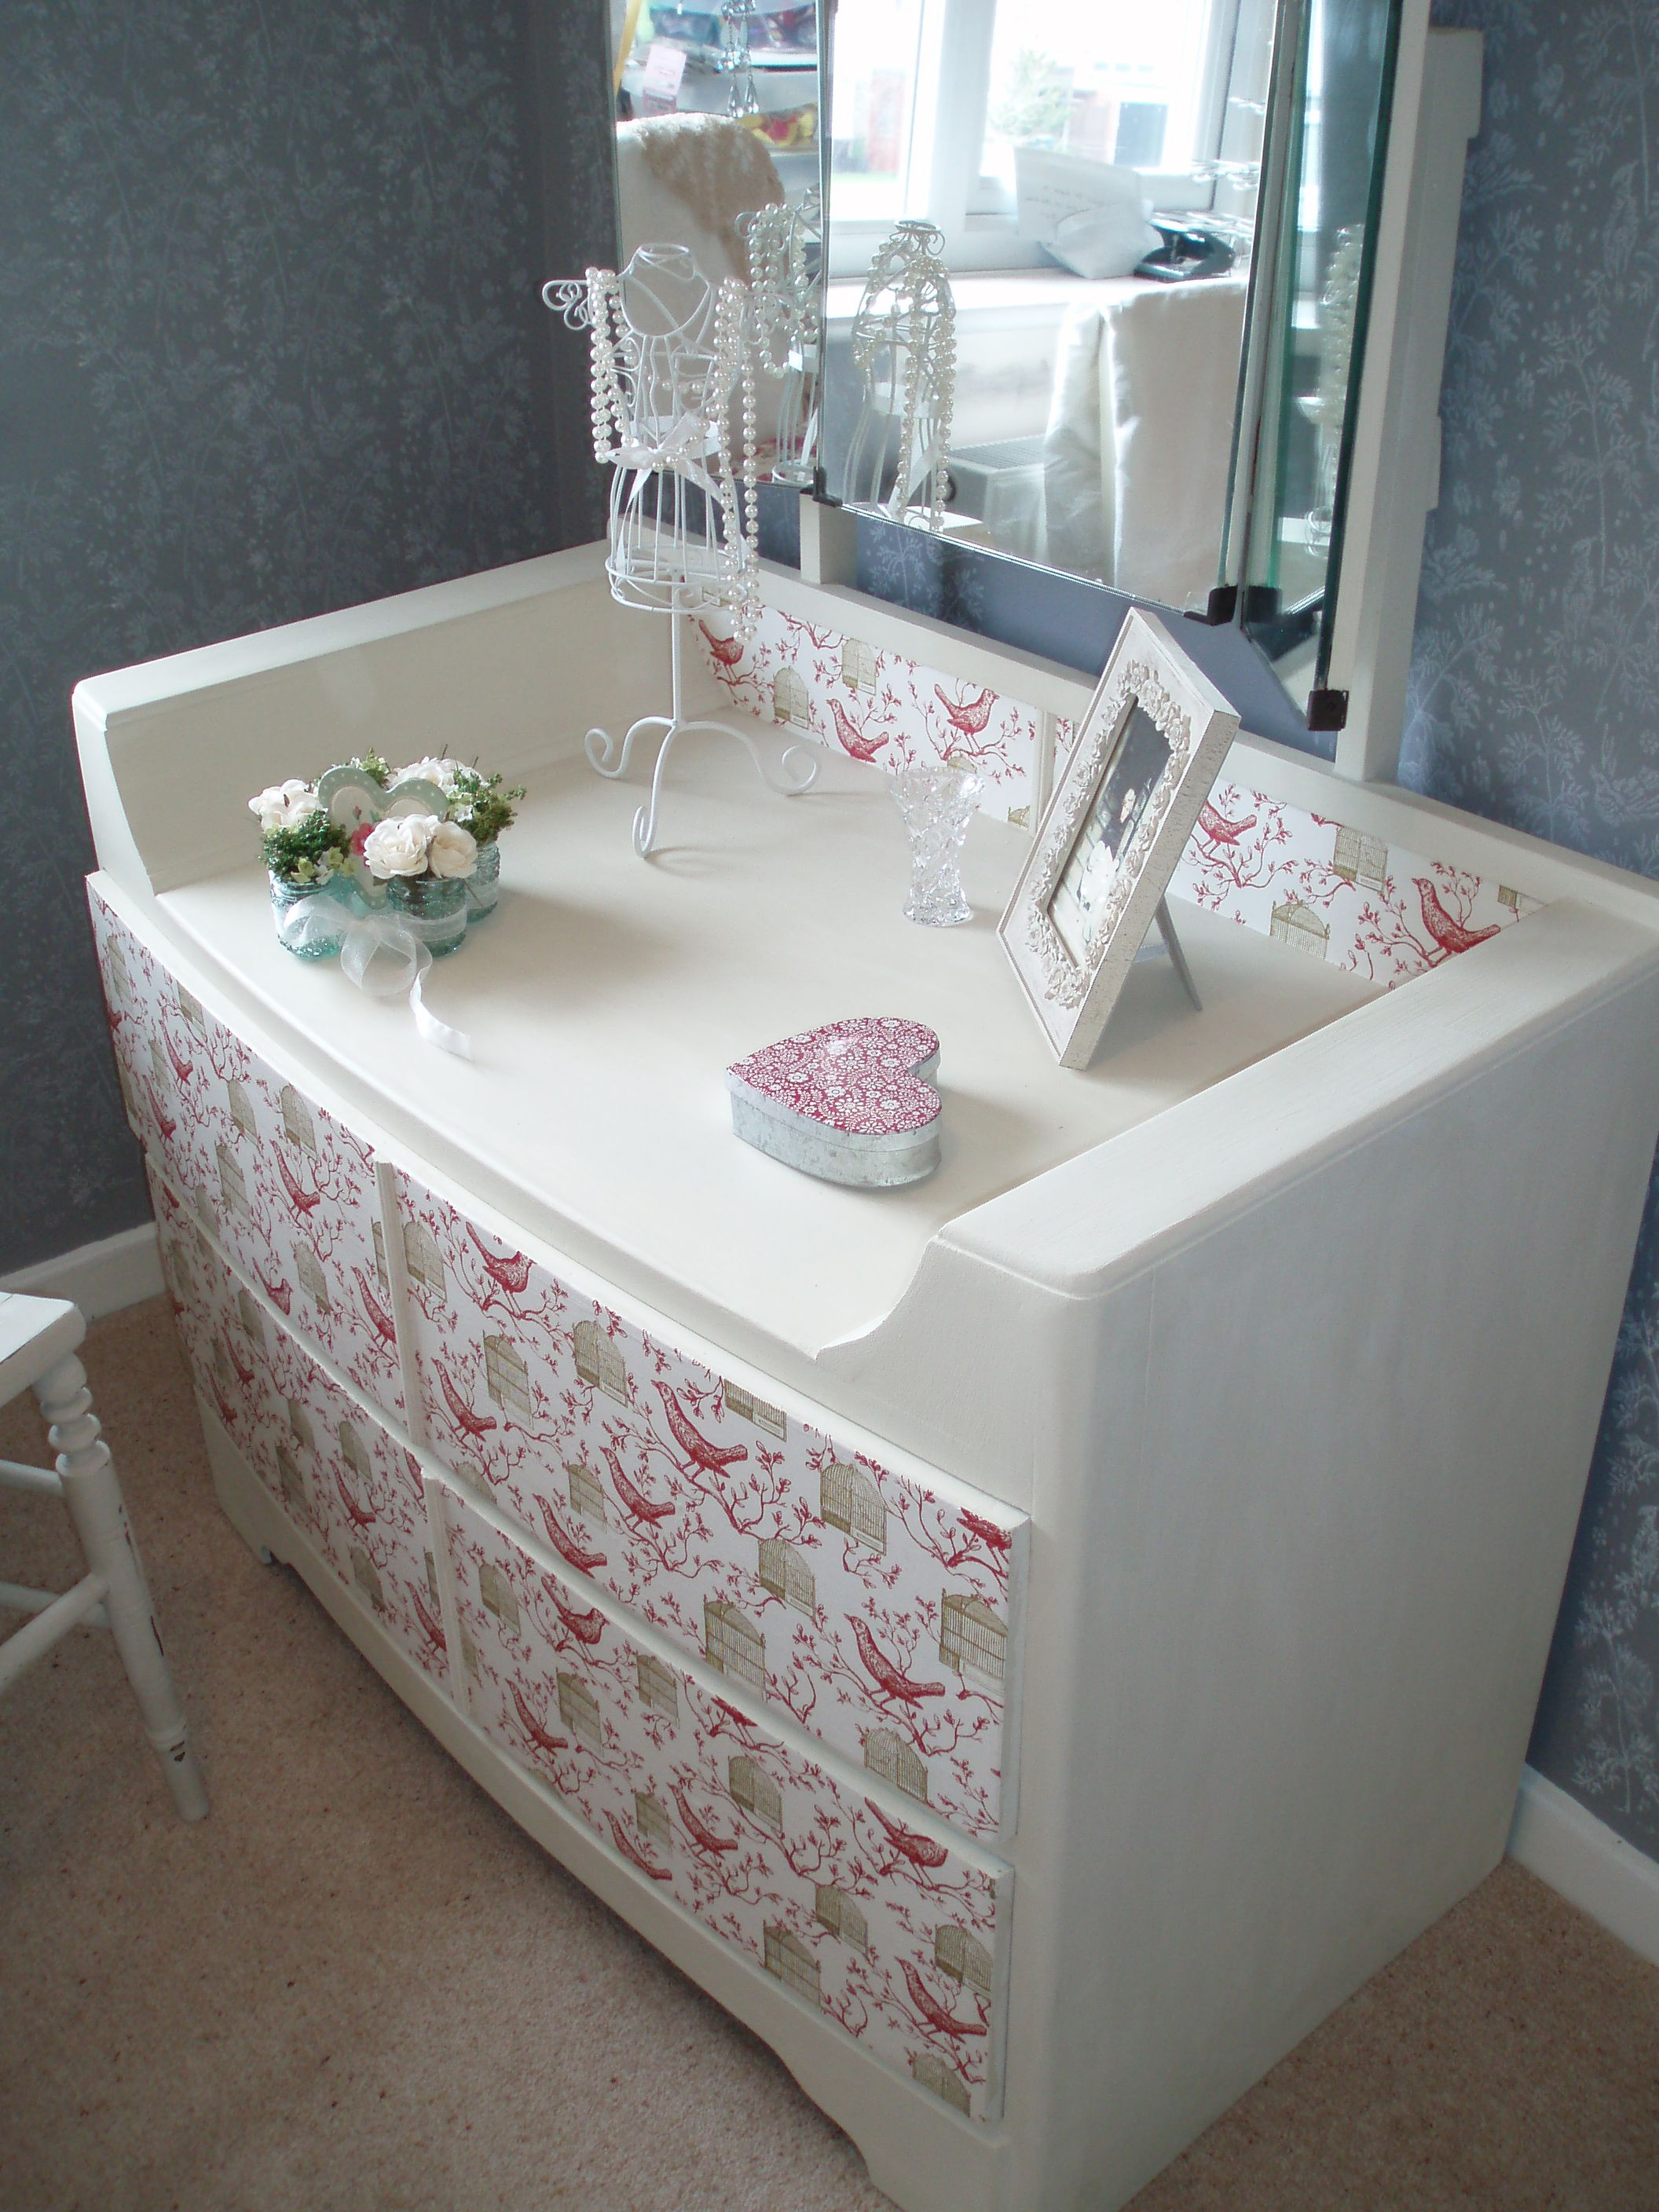 Bedroom Furniture 1950 S upcycled 1950's dressing table #handpainted #unique | diy projects